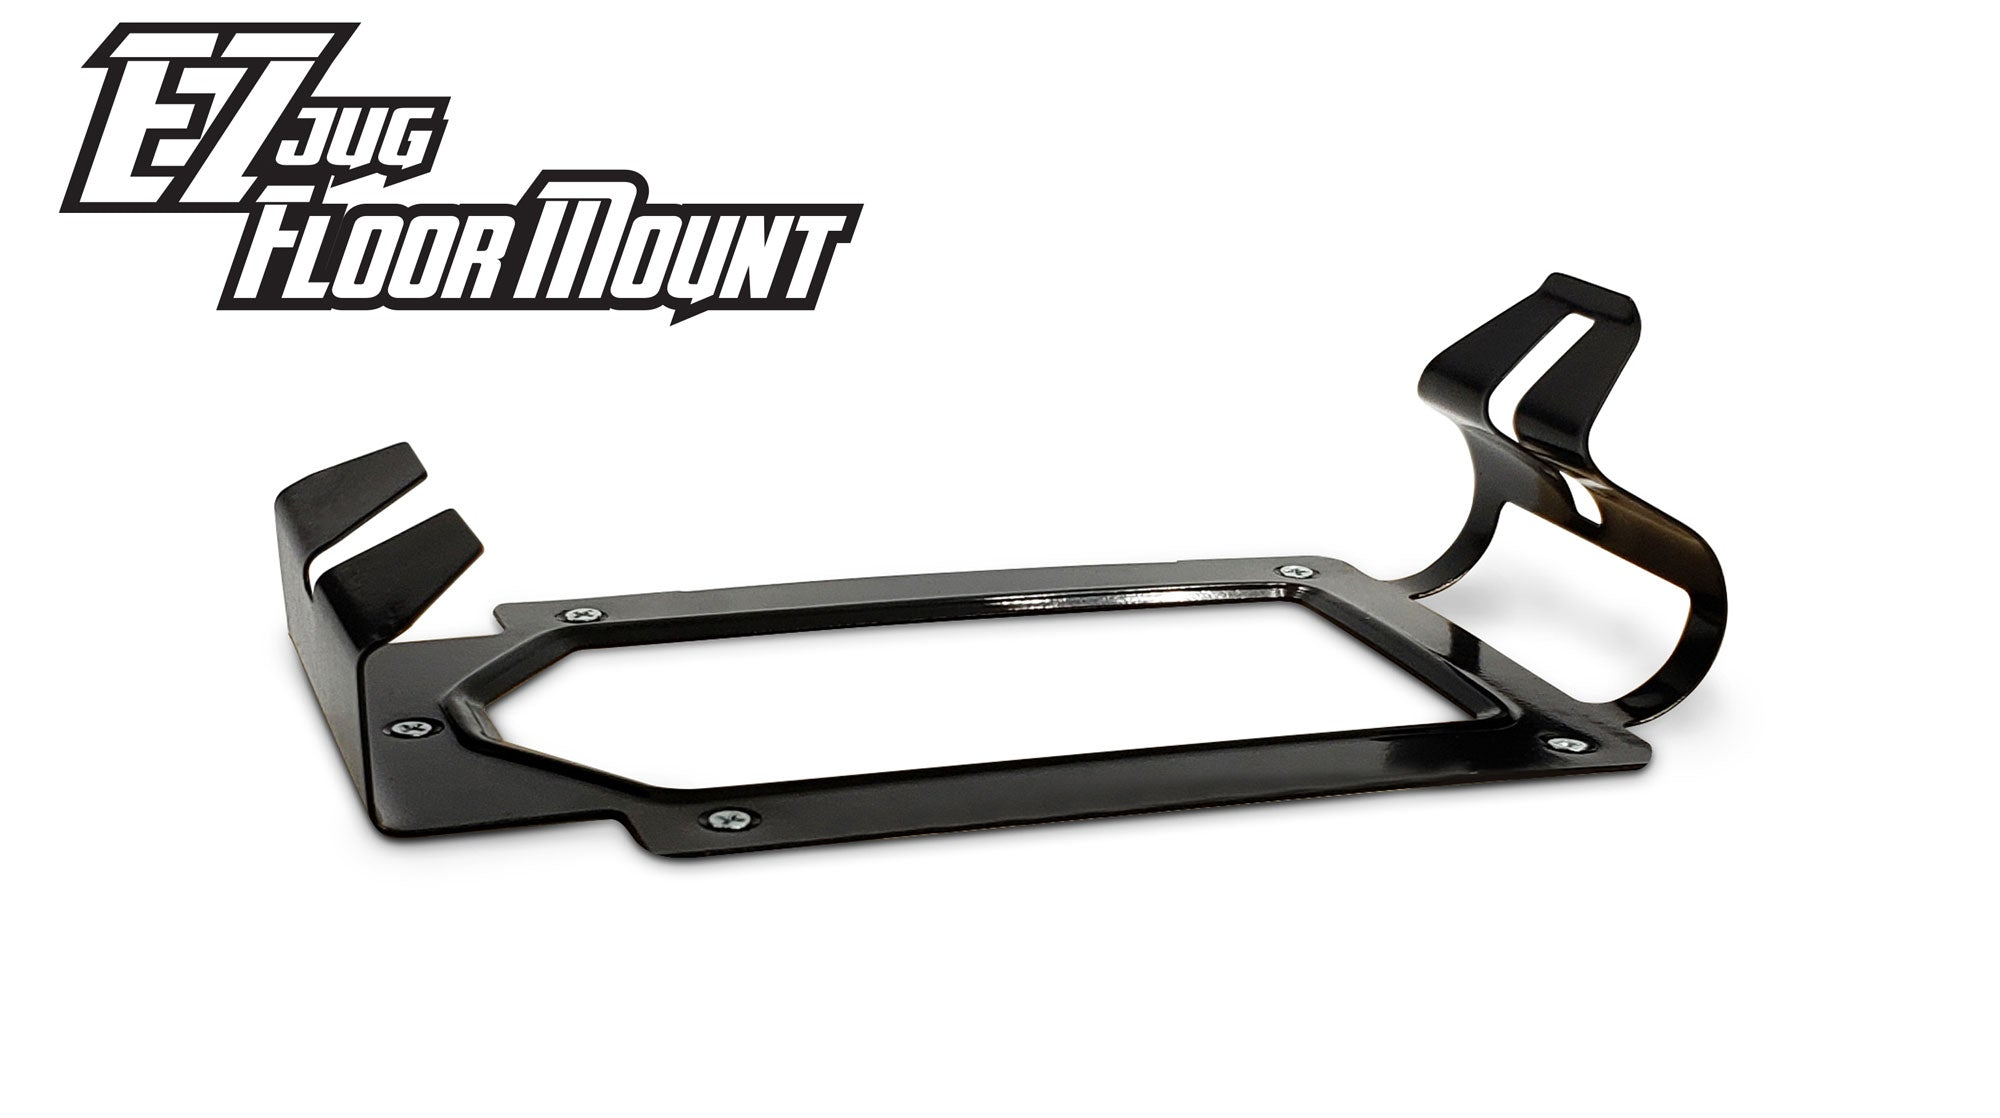 EZ Jug Floor Mount - Risk Racing